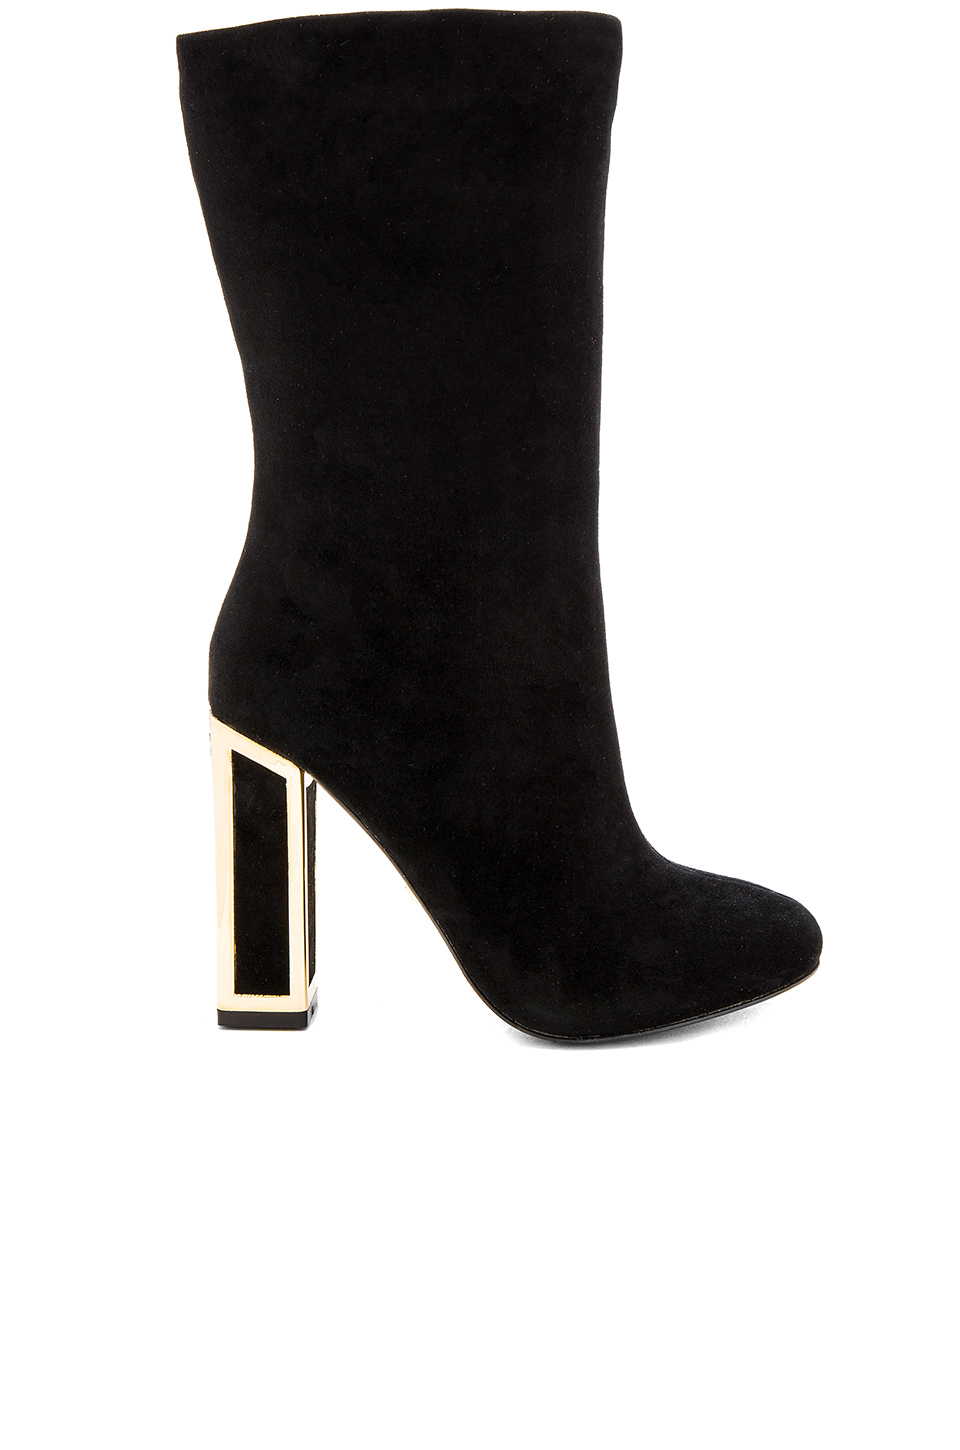 DELORES BOOT . Revolve. Was: $294. Now: $124.